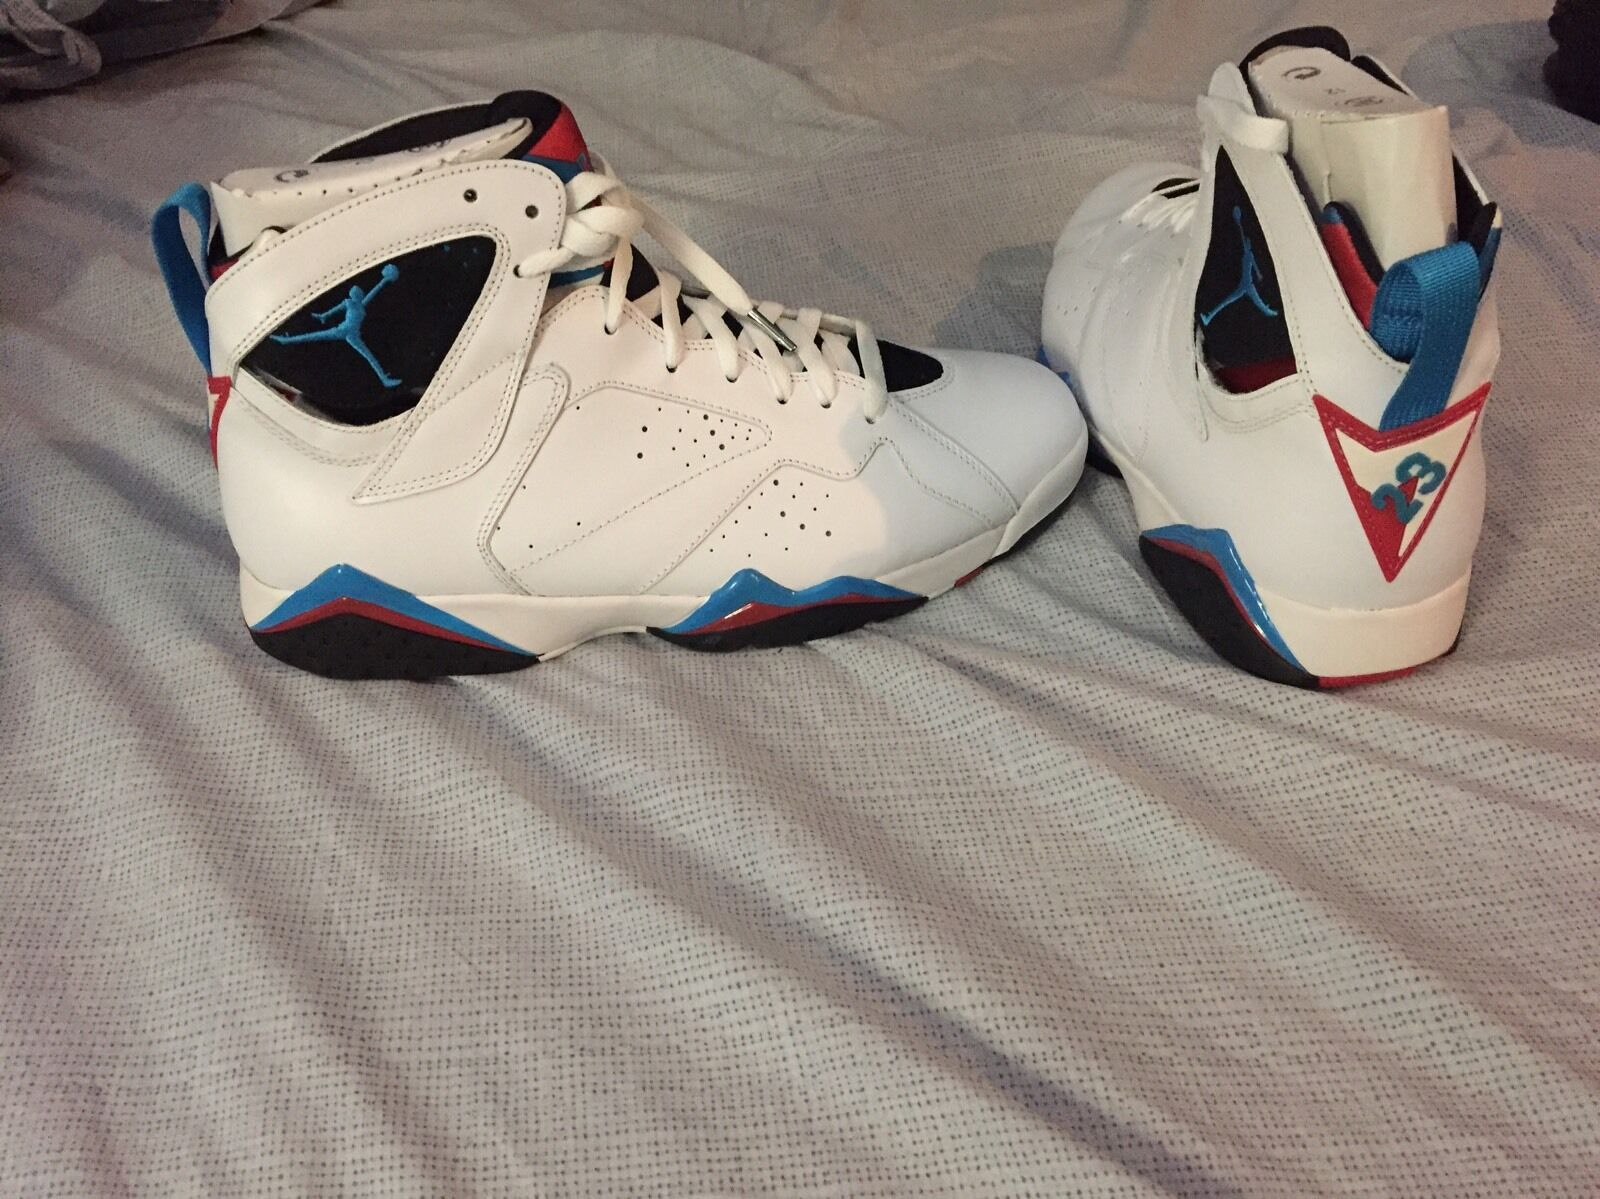 2011 Nike Air Jordan VII 7 Retro WHITE /ORION BLUE